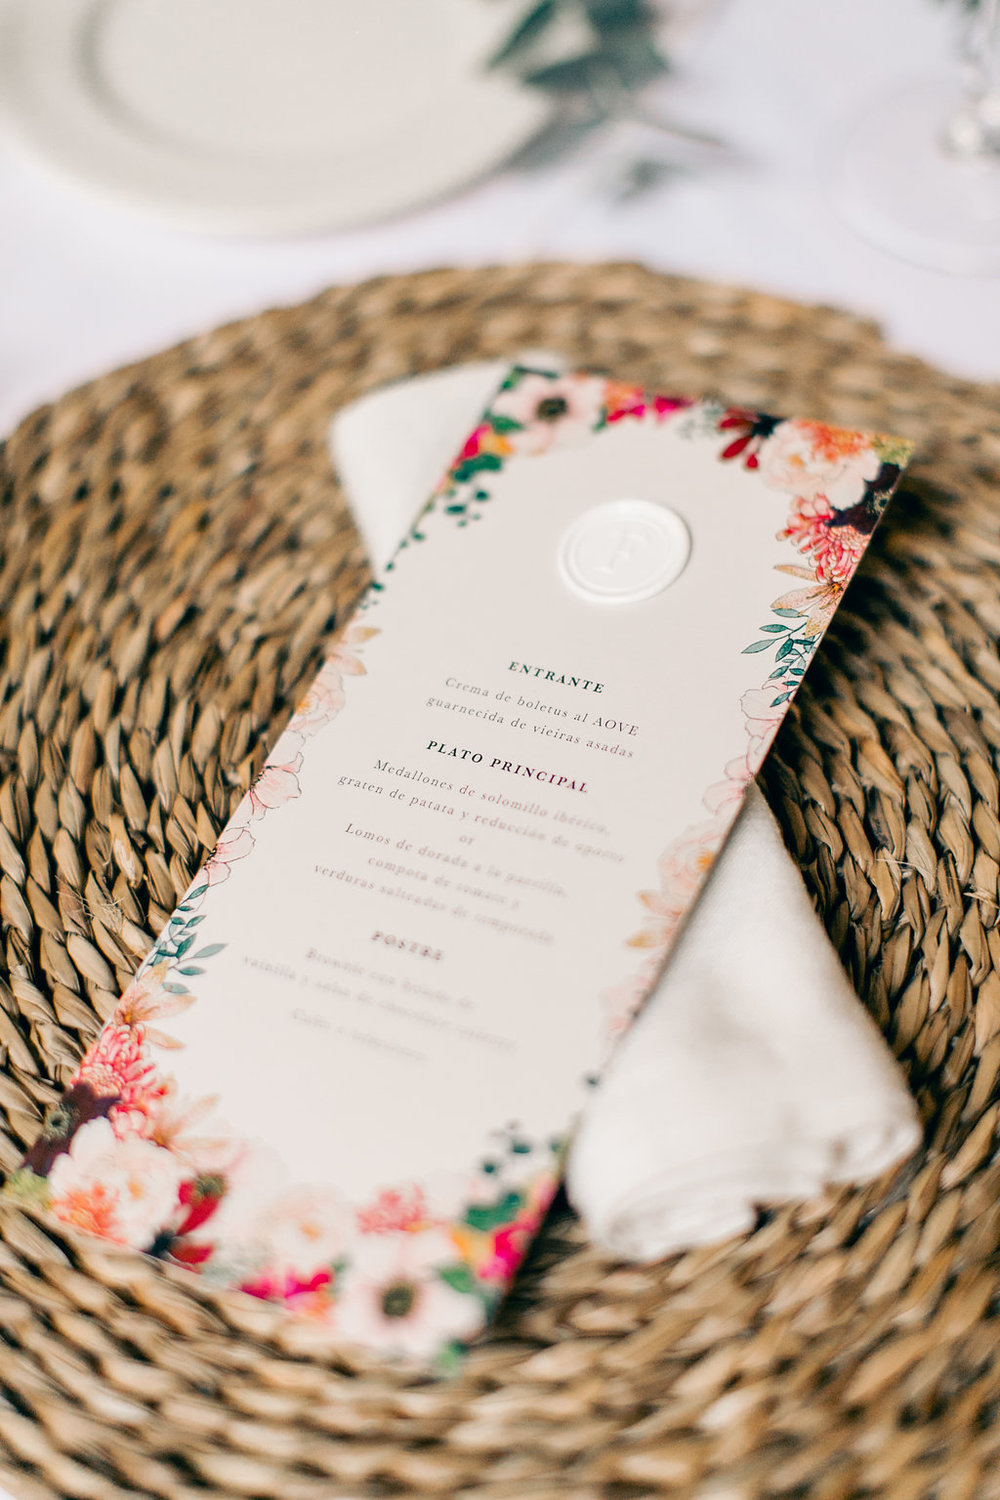 Wedding Menu Wax Seal Spain Luxury Wedding Vienna Glenn Wedding Photography